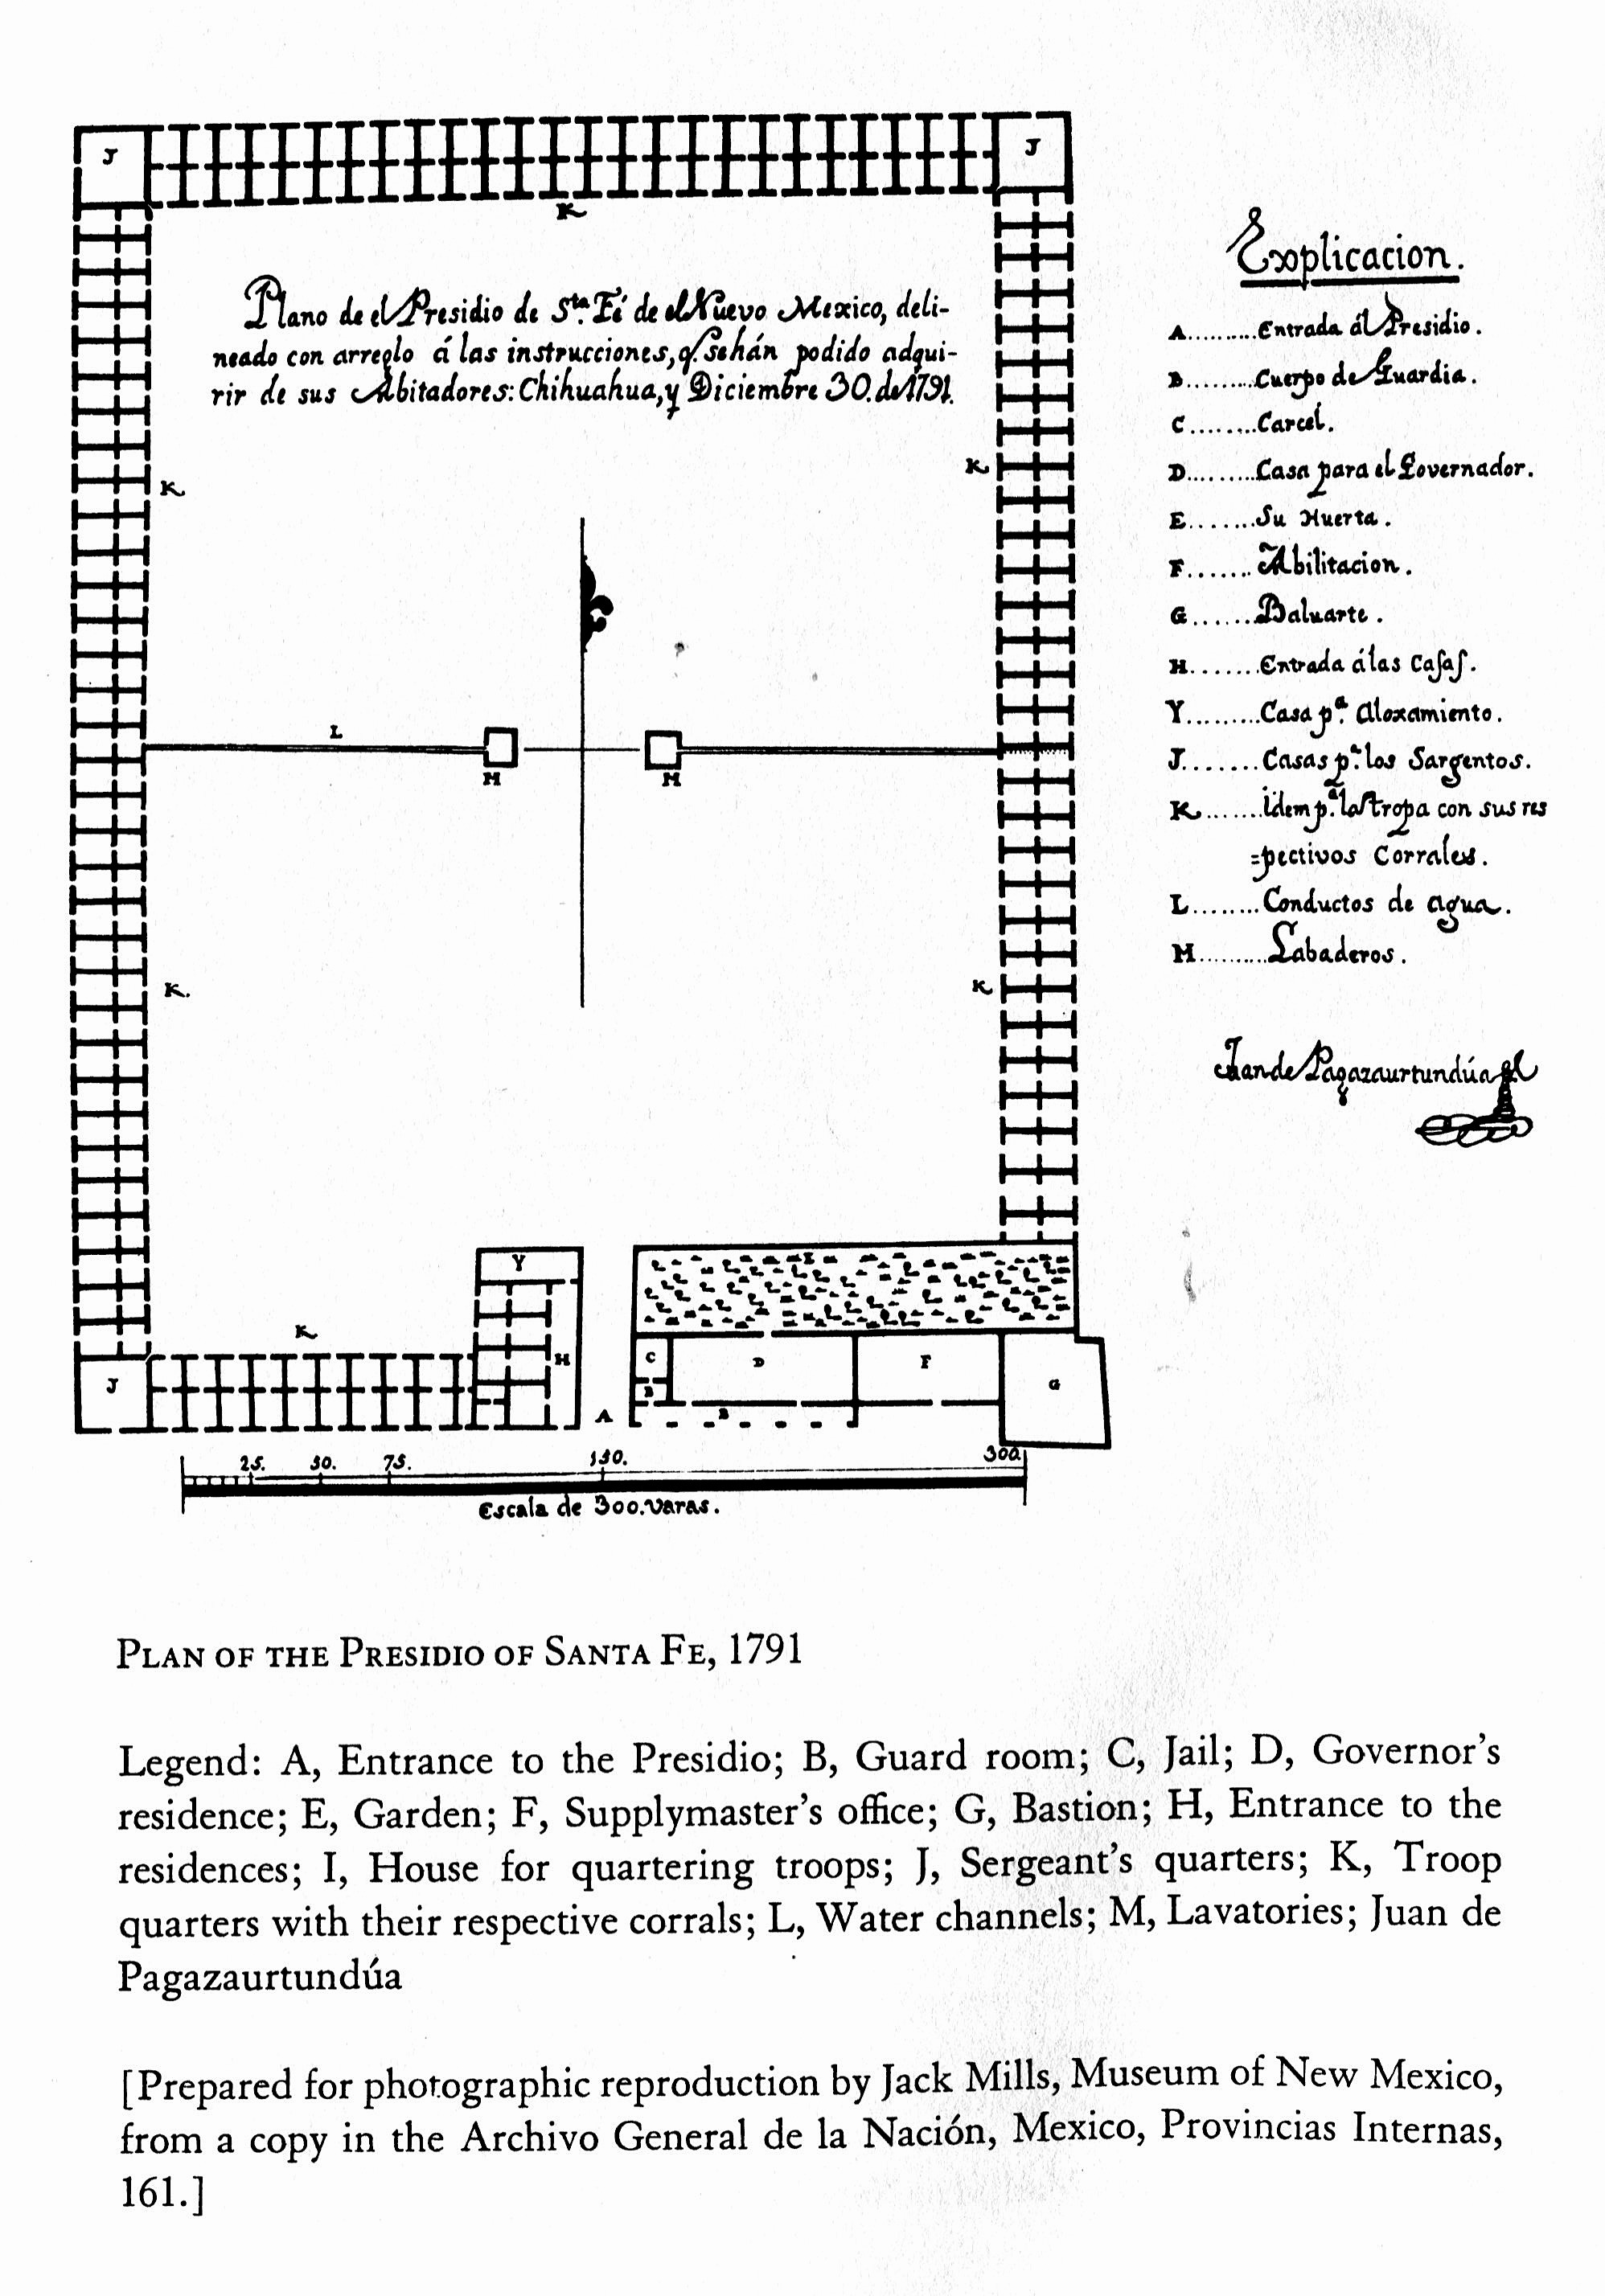 1791 Plan of the Presidio in Santa Fe. Discovered by Marc Simmons and published in his Spanish Government in New Mexico.